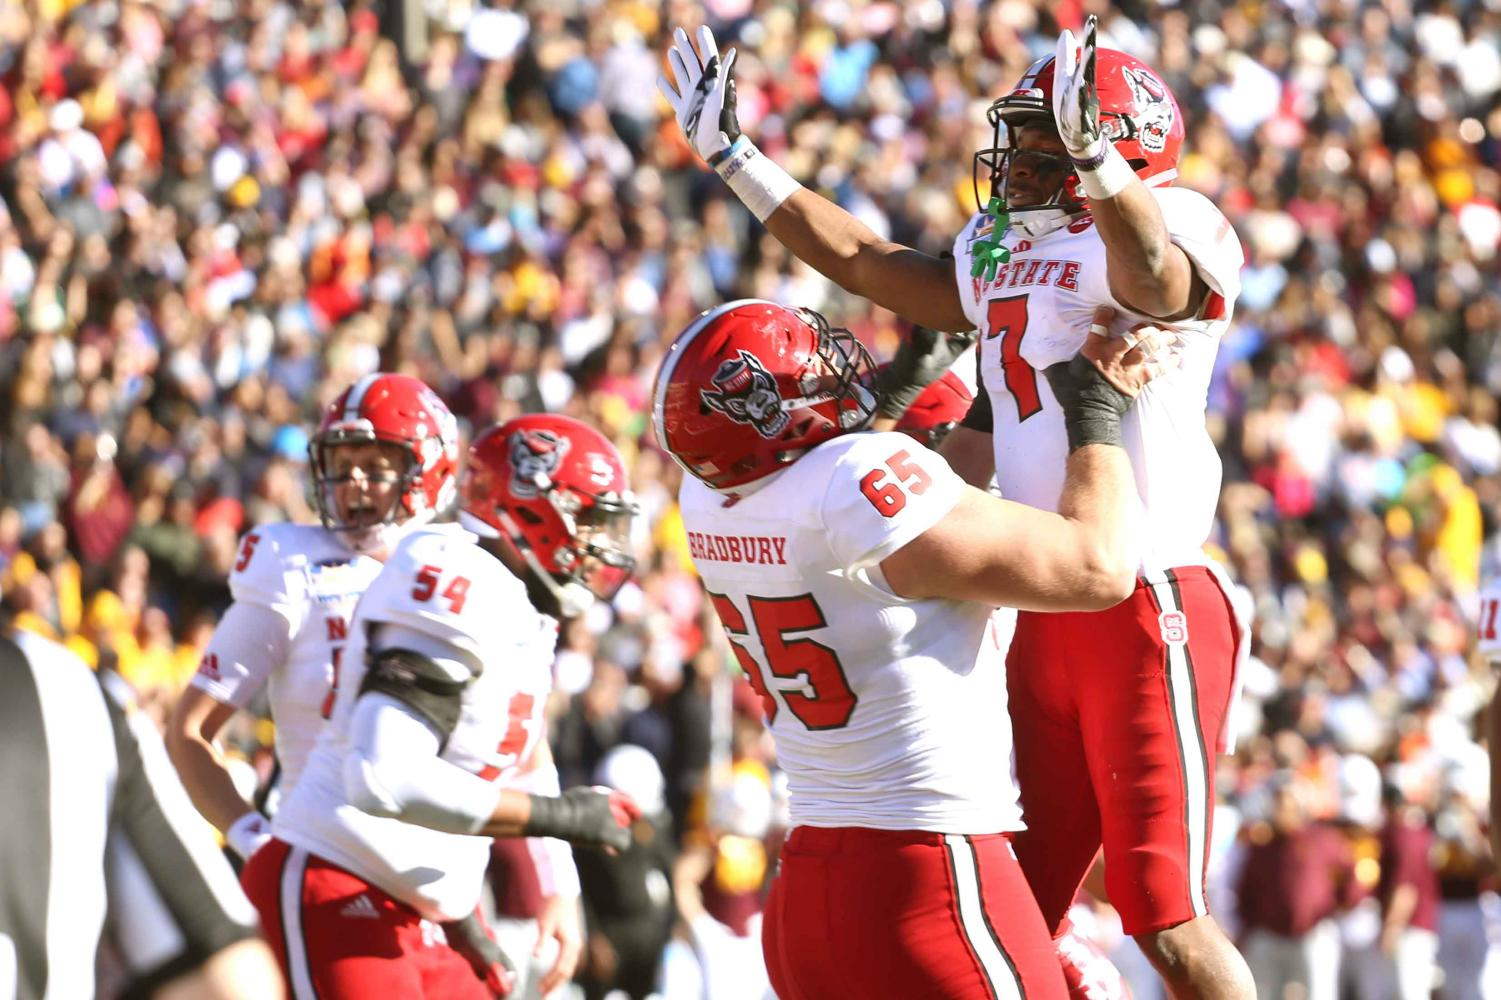 NC State running back Nyheim Hines scored three touchdowns as he led his team to victory.